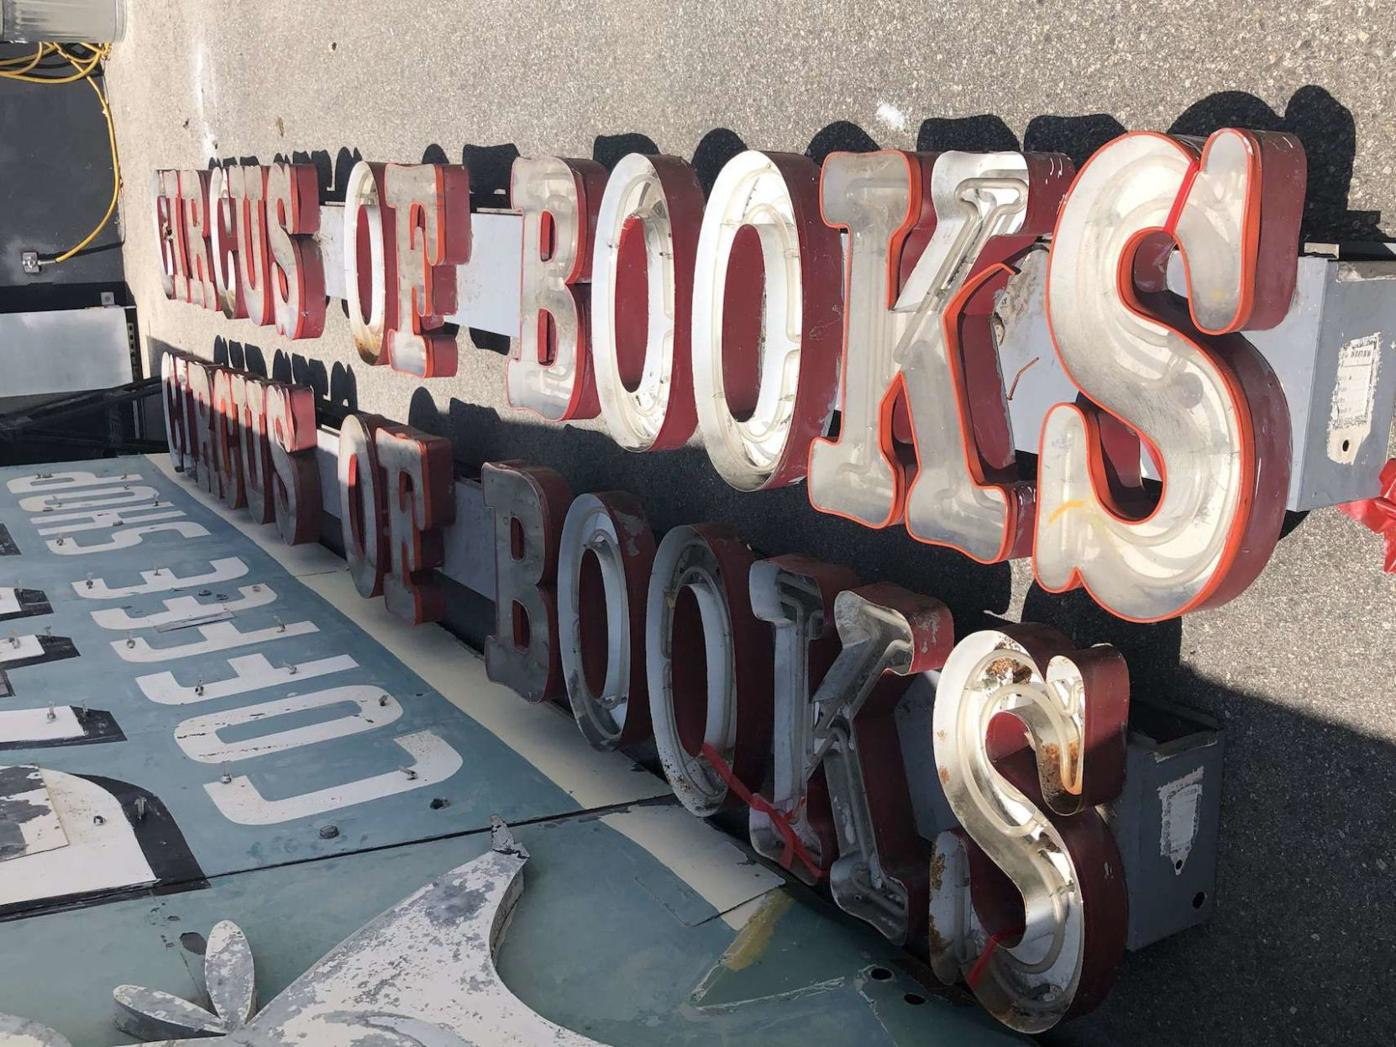 Circus of Books sign